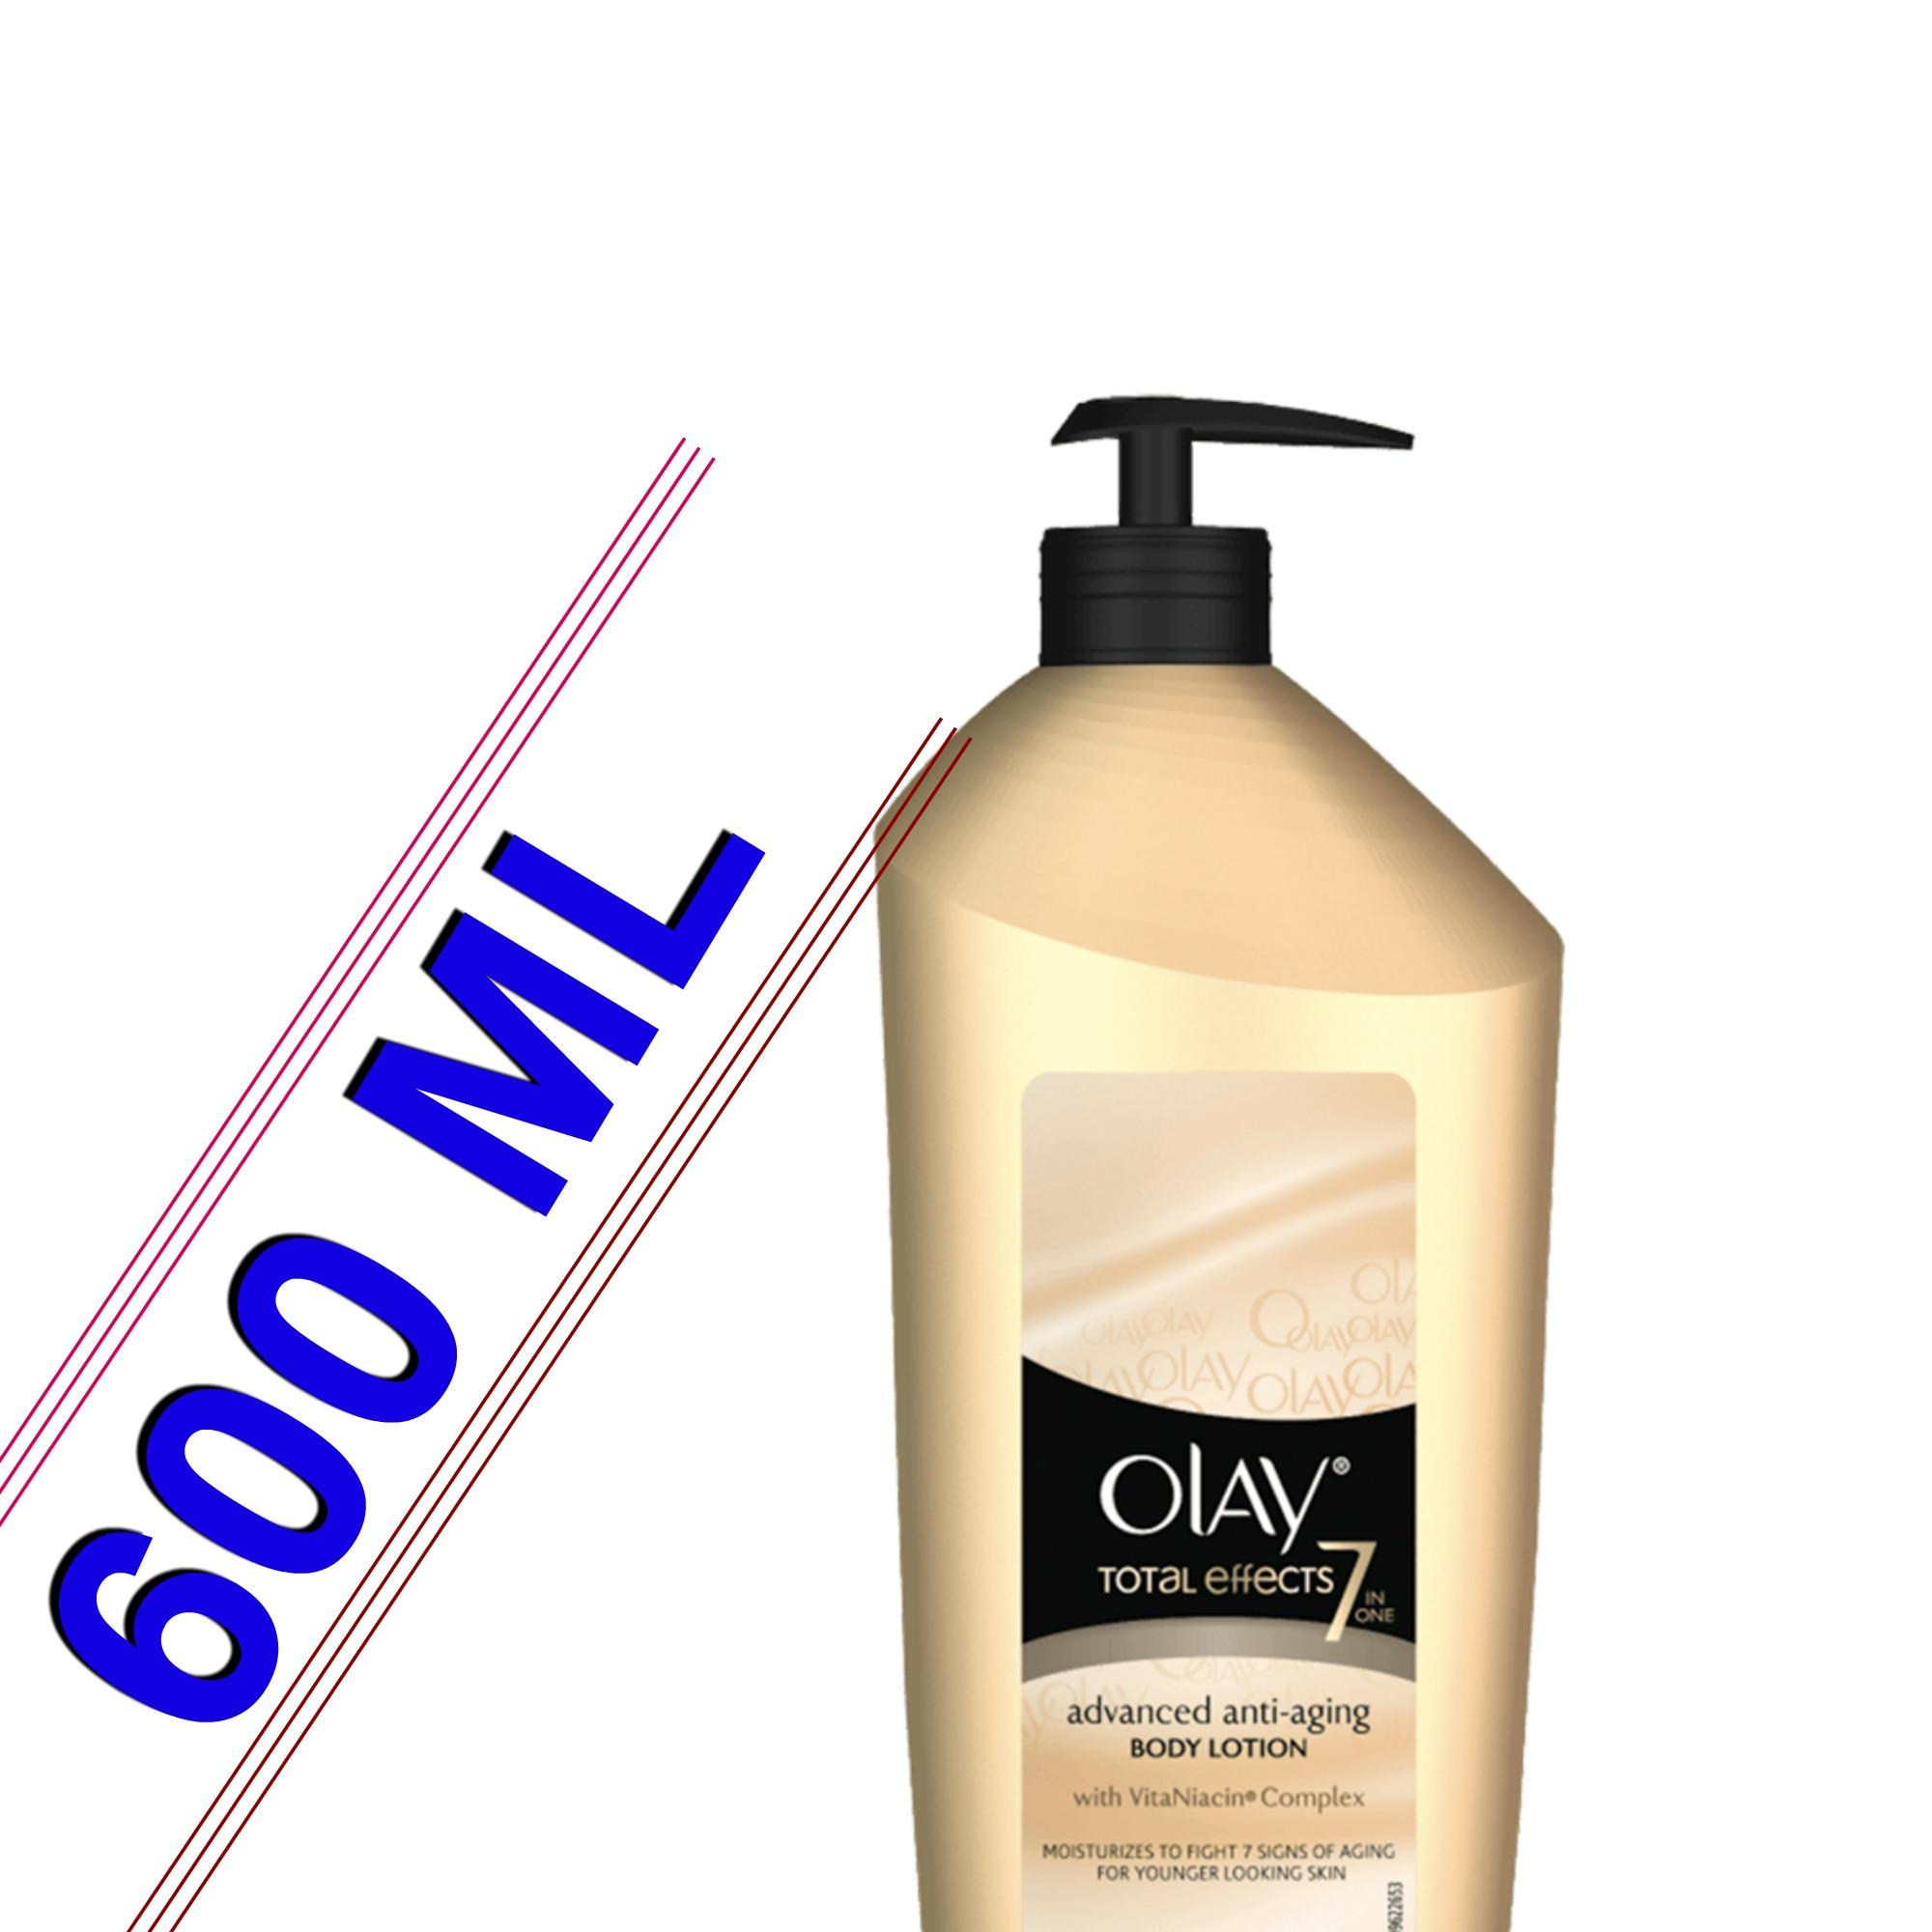 The Cheapest Price Olay Total Effects Ultimate Box 189900 7in1 Anti Ageing Serum 50ml 7 In 1 Advance Aging Body Lotion W Vitaniacin Complex 600 Ml